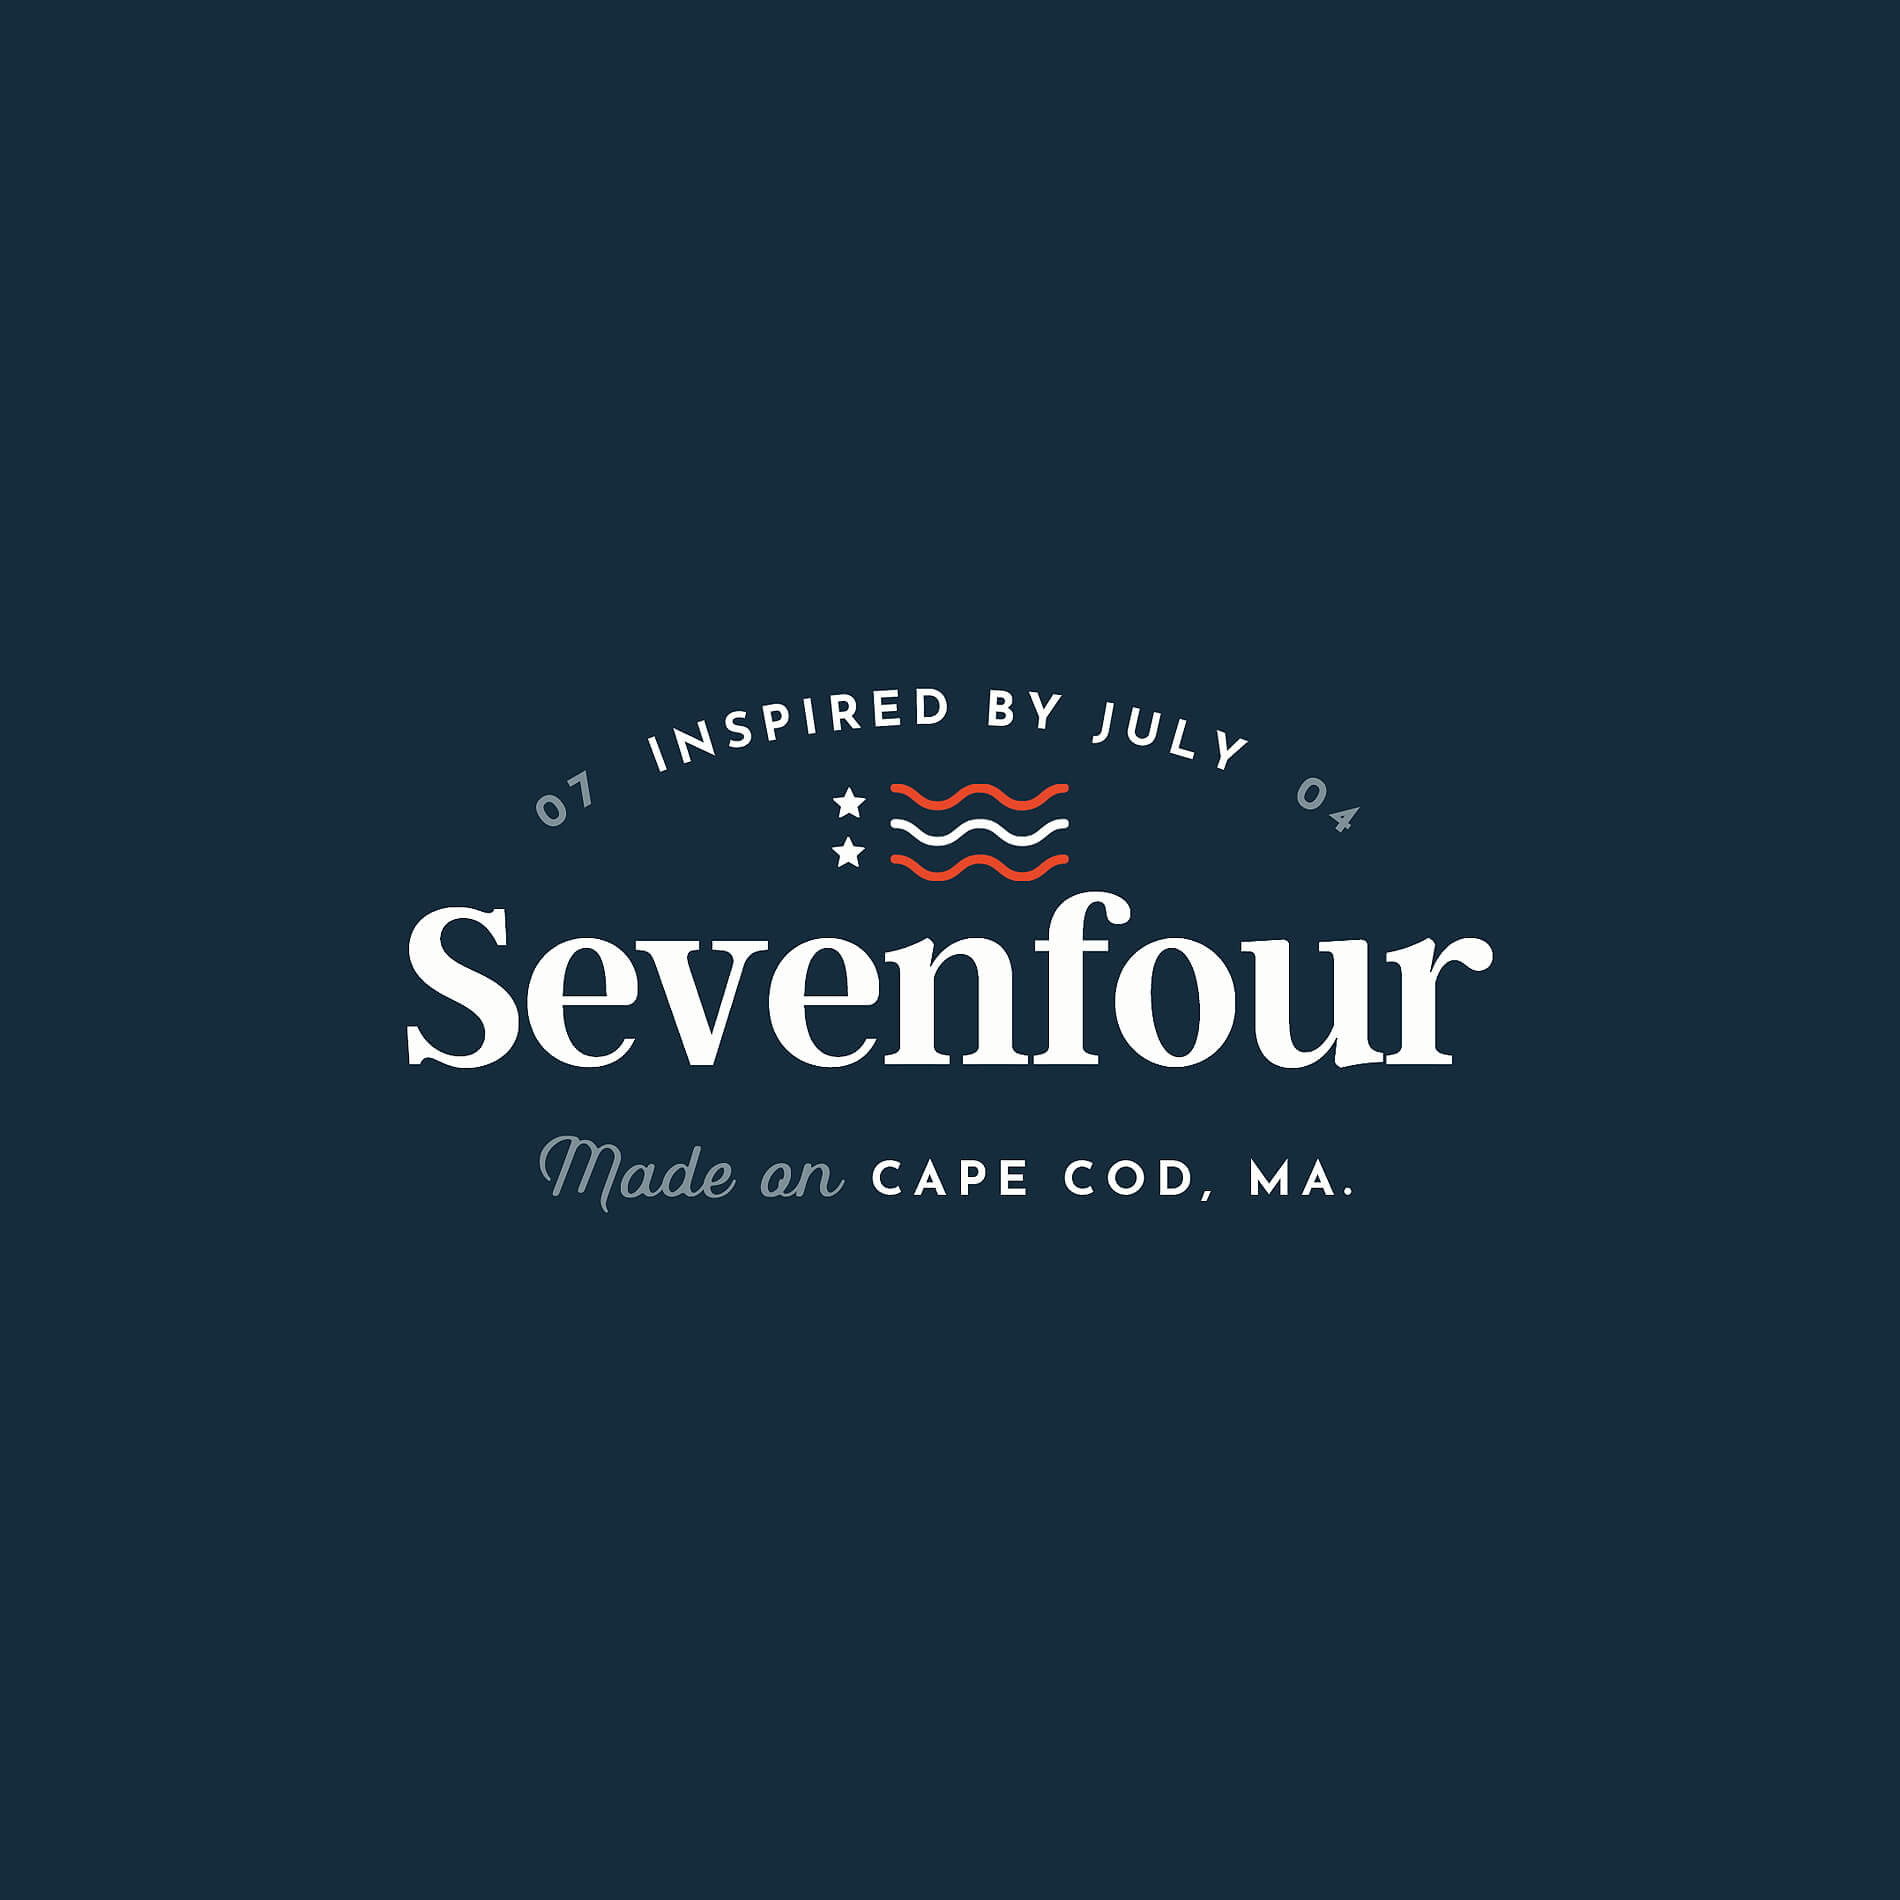 Inspired by JulyLogo & Name Development - An apparel company for sundresses and salt air. For the working mom and the beach bum.The Sevenfour name comes from the American holiday Fourth of July (07/04). The brand's sophisticated, feminine logo draws from nostalgia for summers spent on Cape Cod.